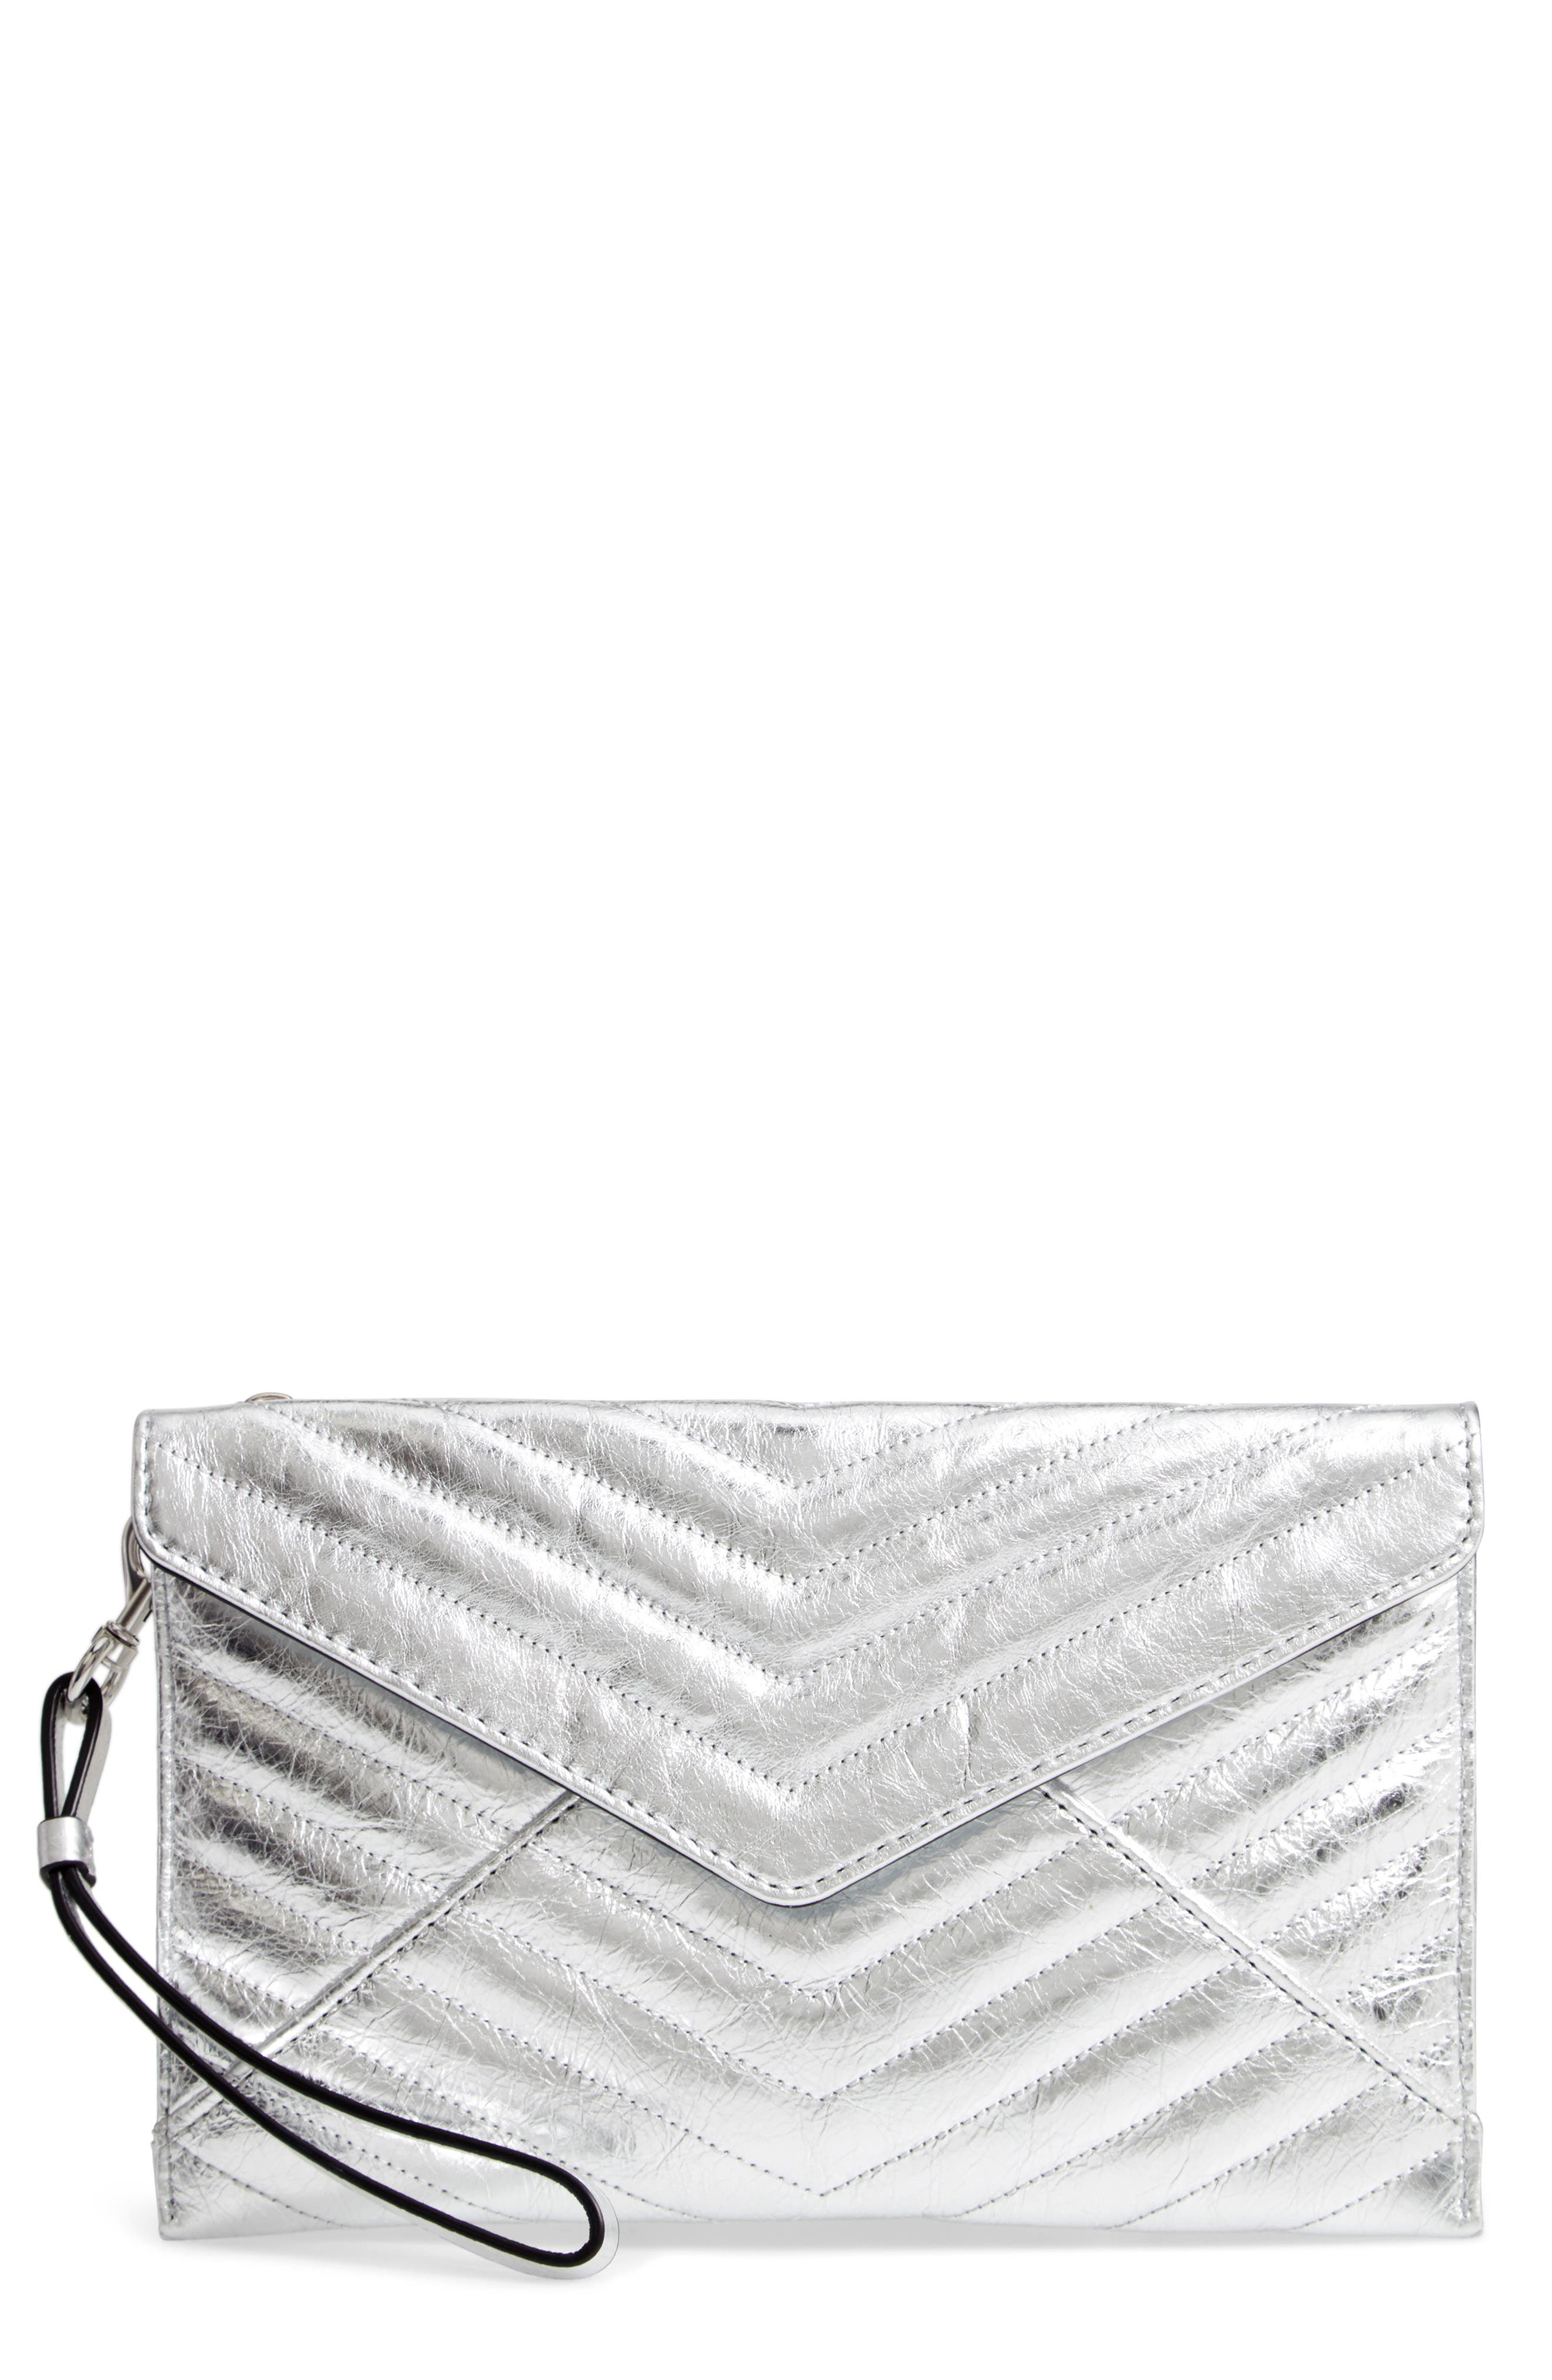 Leo Quilted Leather Clutch - Metallic in Silver